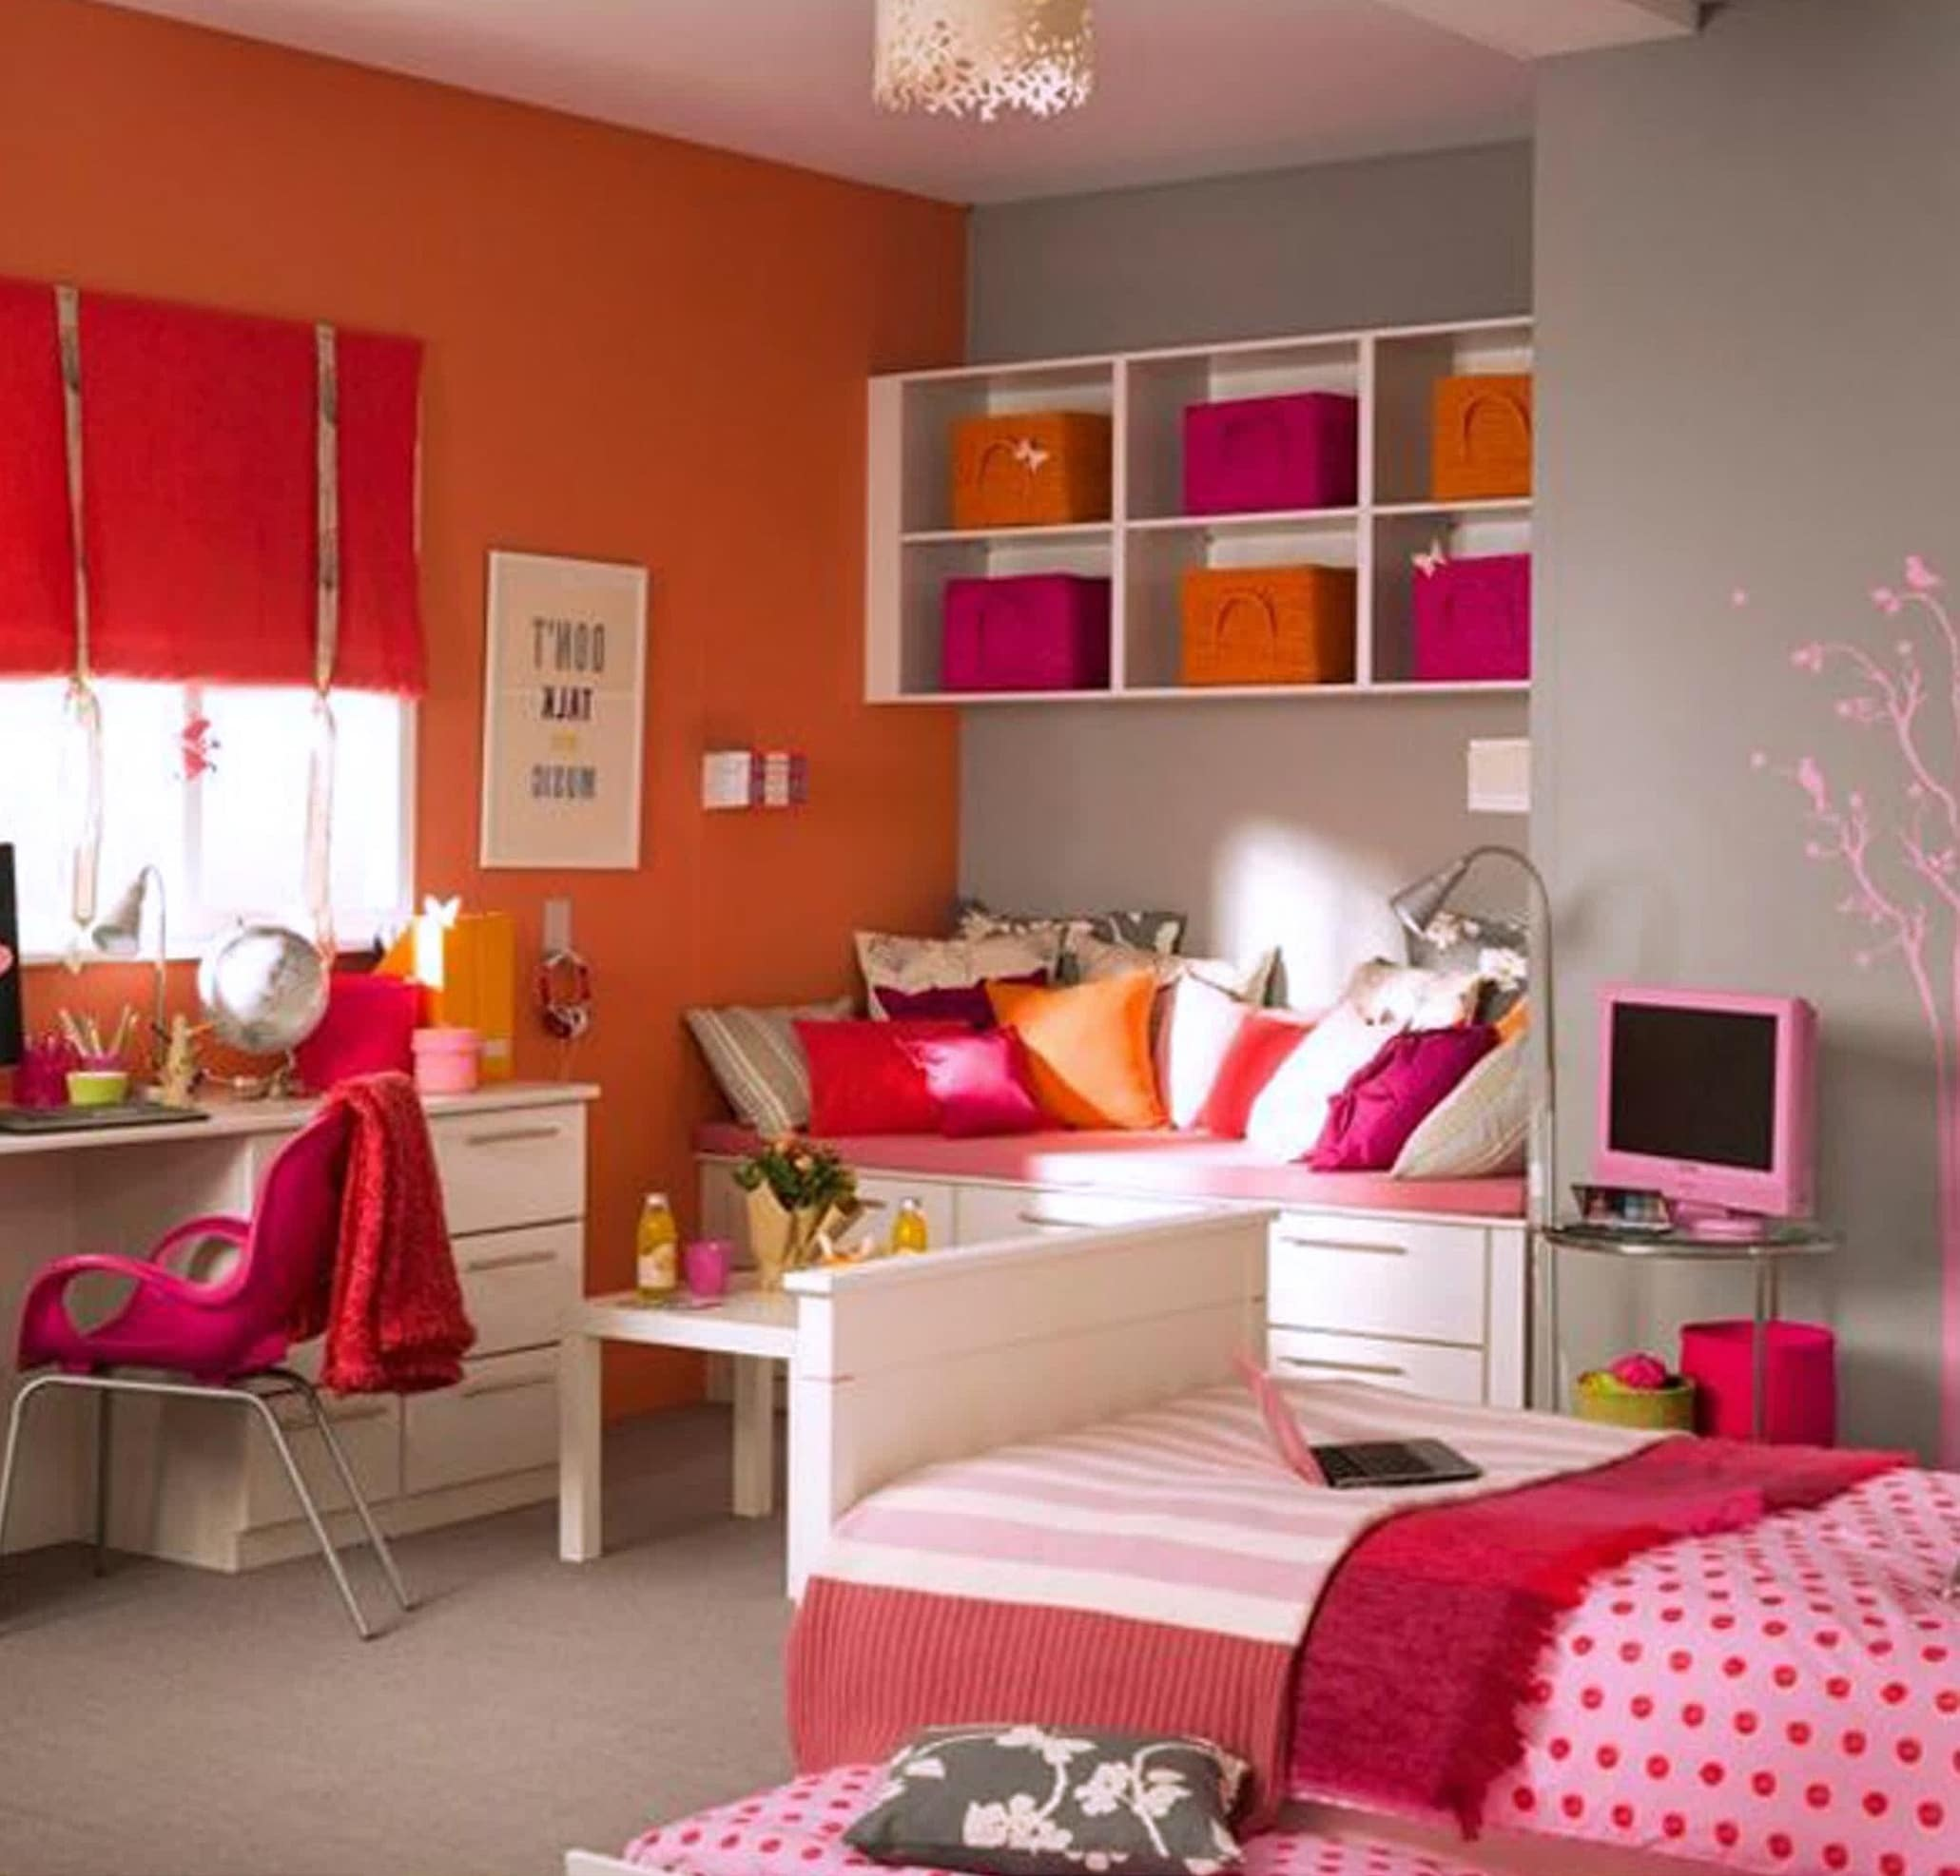 Girl Teen Room Rosa con Naranjo